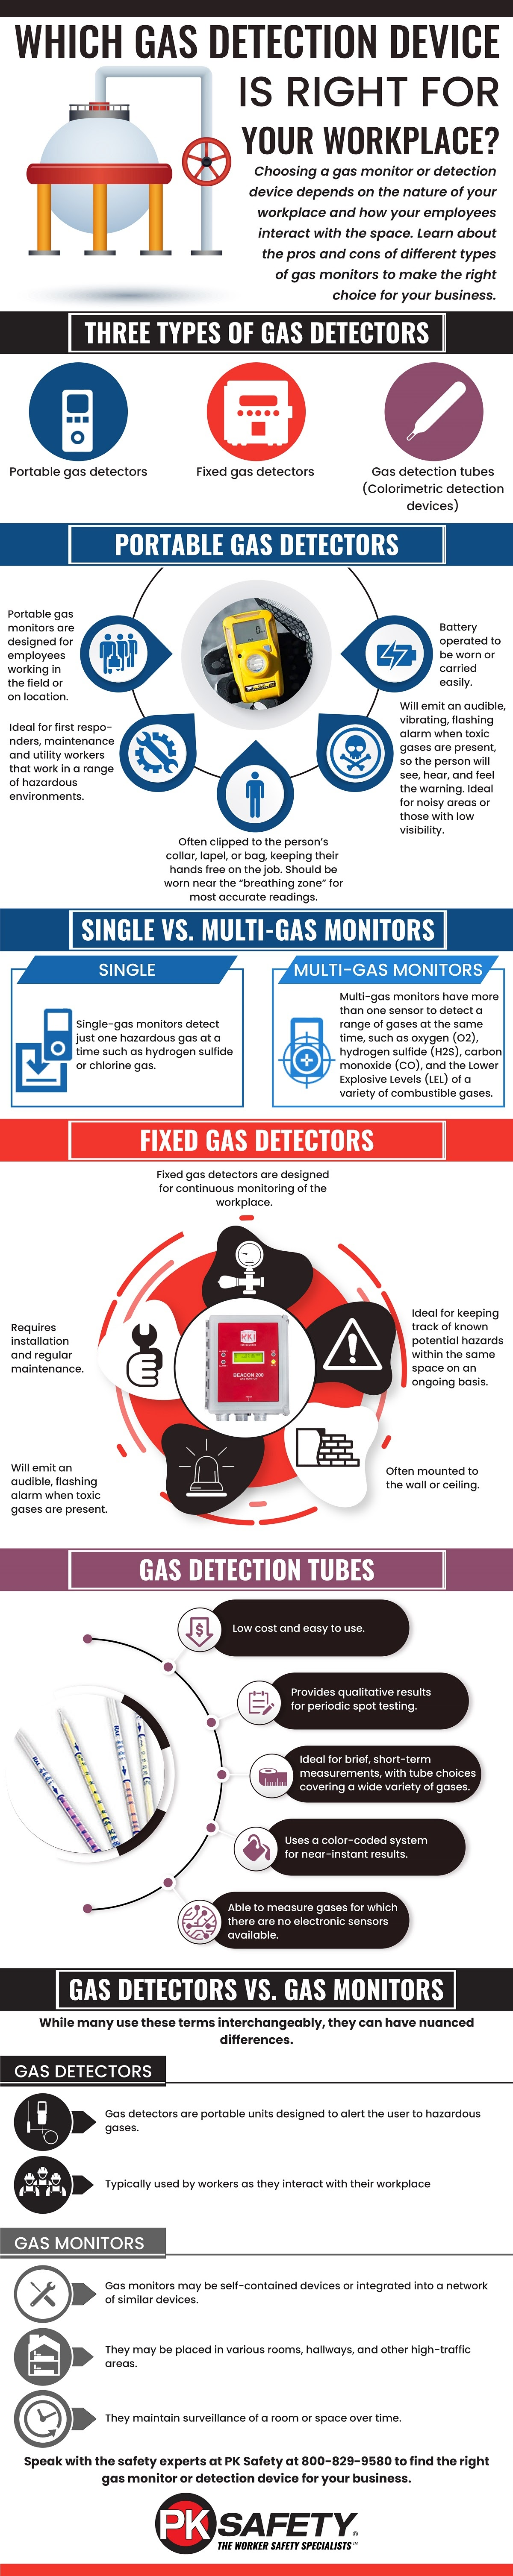 which-gas-detection-device-is-right-for-your-workplace-infographic